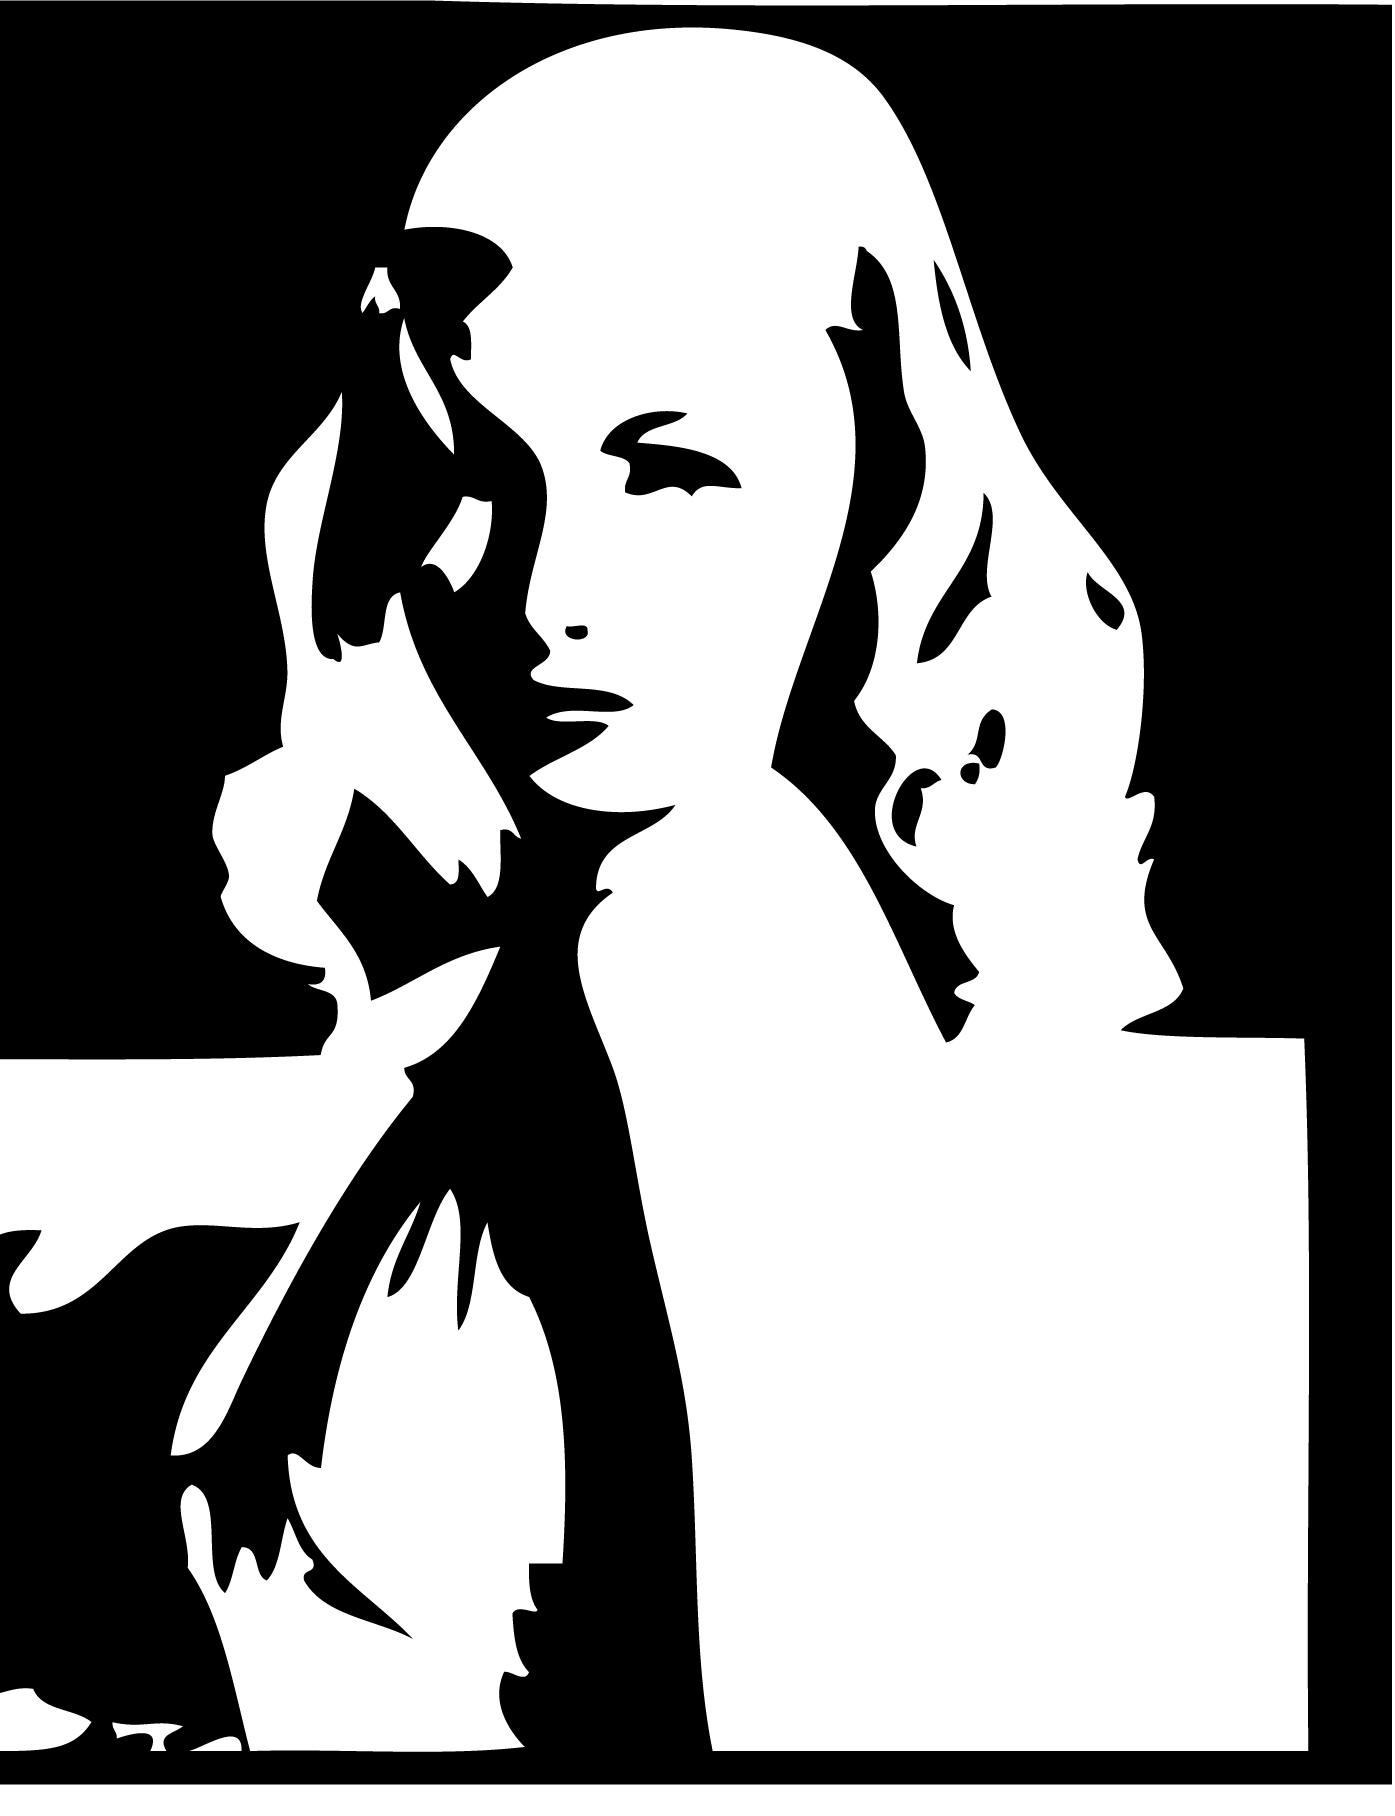 FILM-NOIR-veronica-lake-8833467-1395-1816.jpg